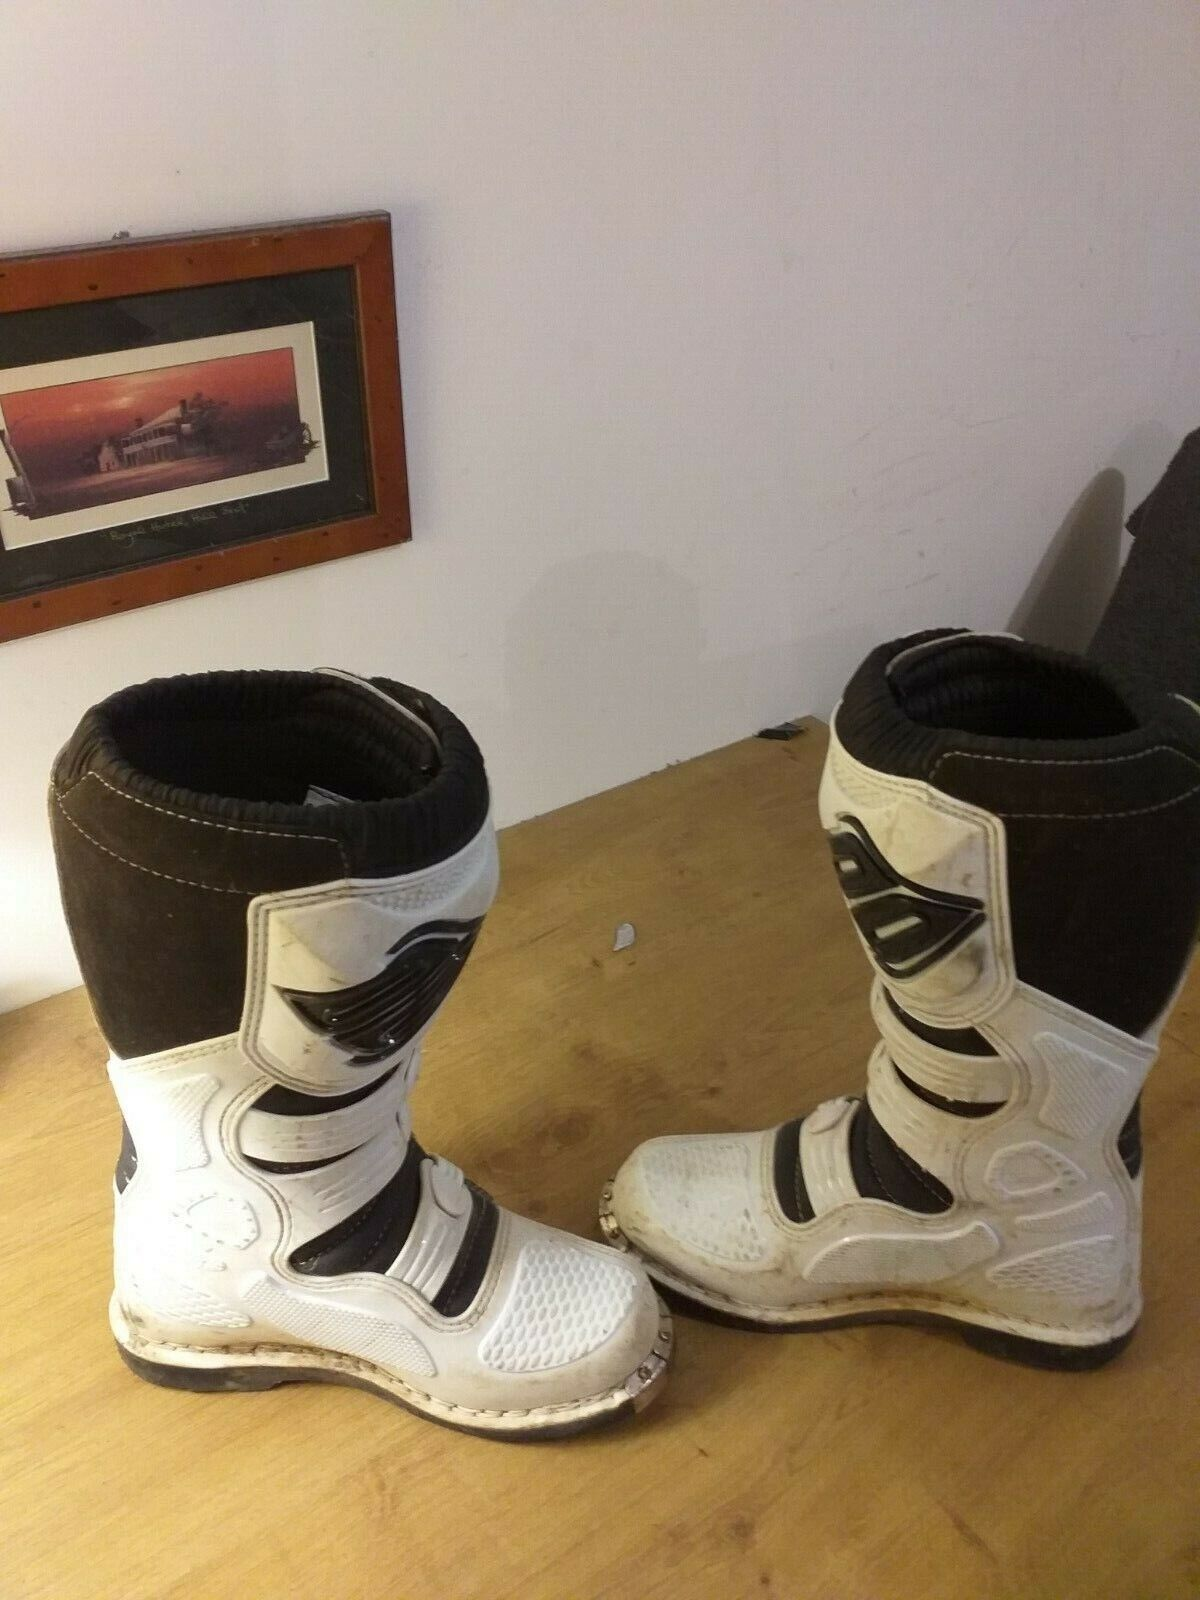 Bottes motocross shotx12 t40 blanches